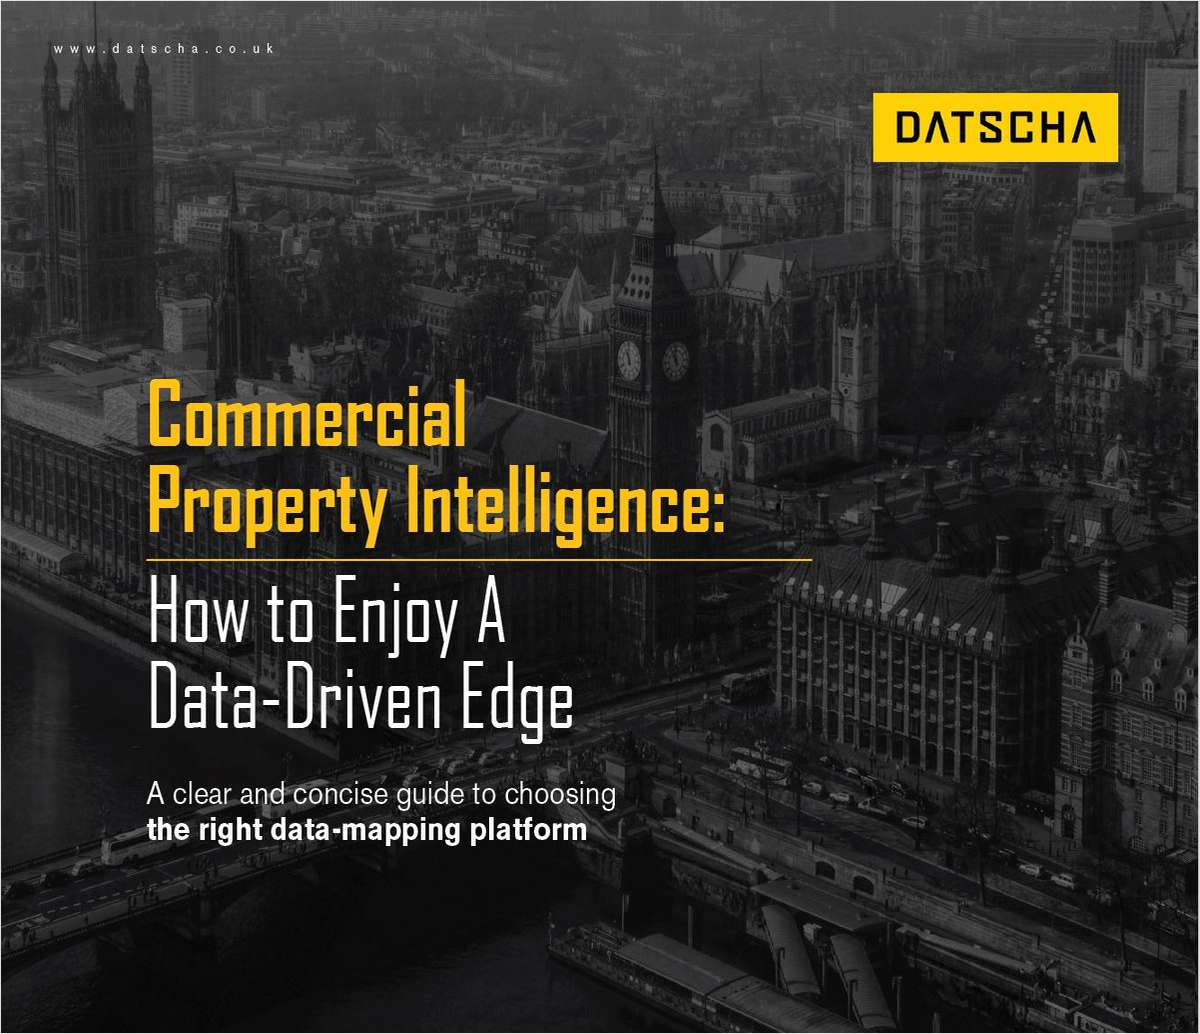 How to Enjoy A Data-Driven Edge